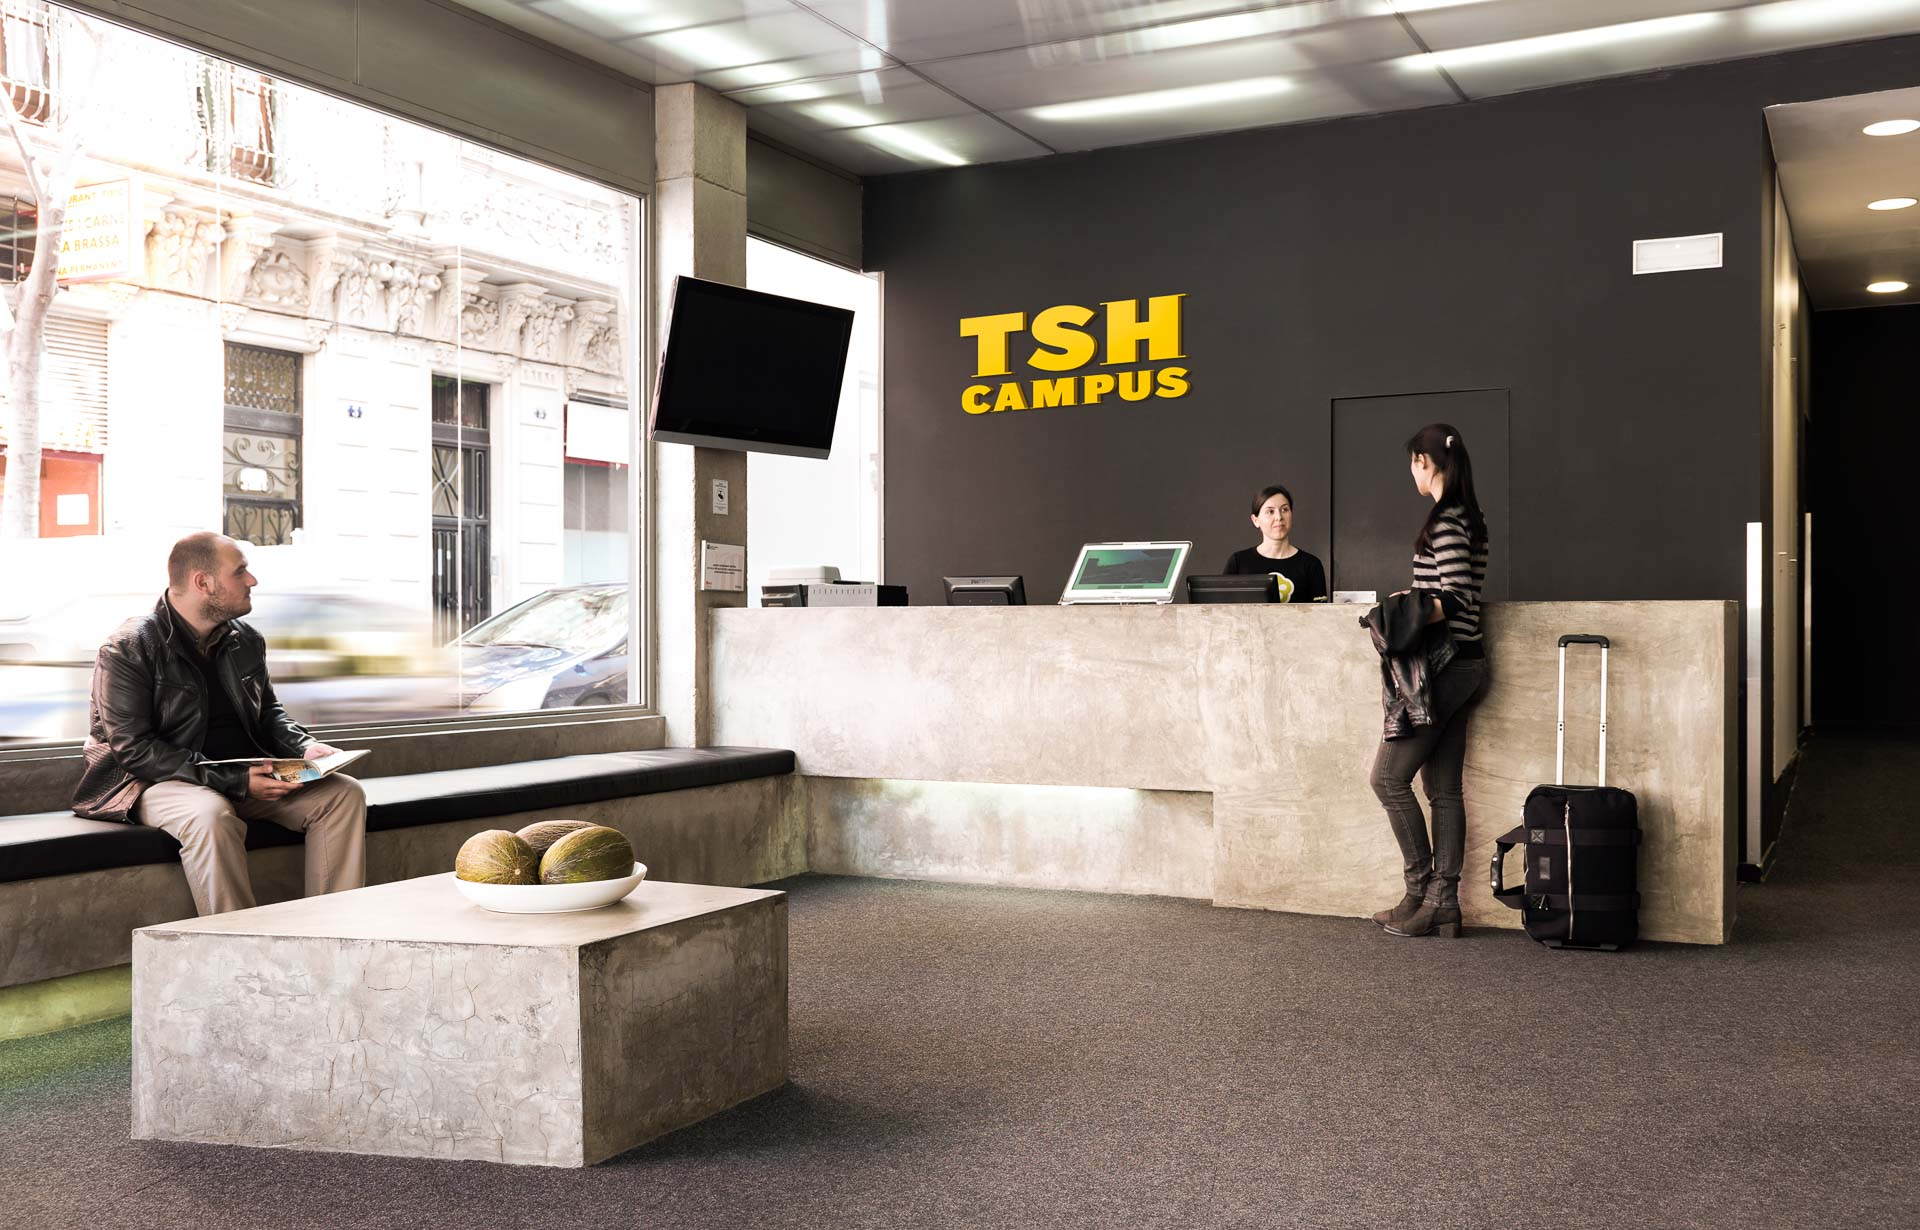 TSH campus reception and lounge area